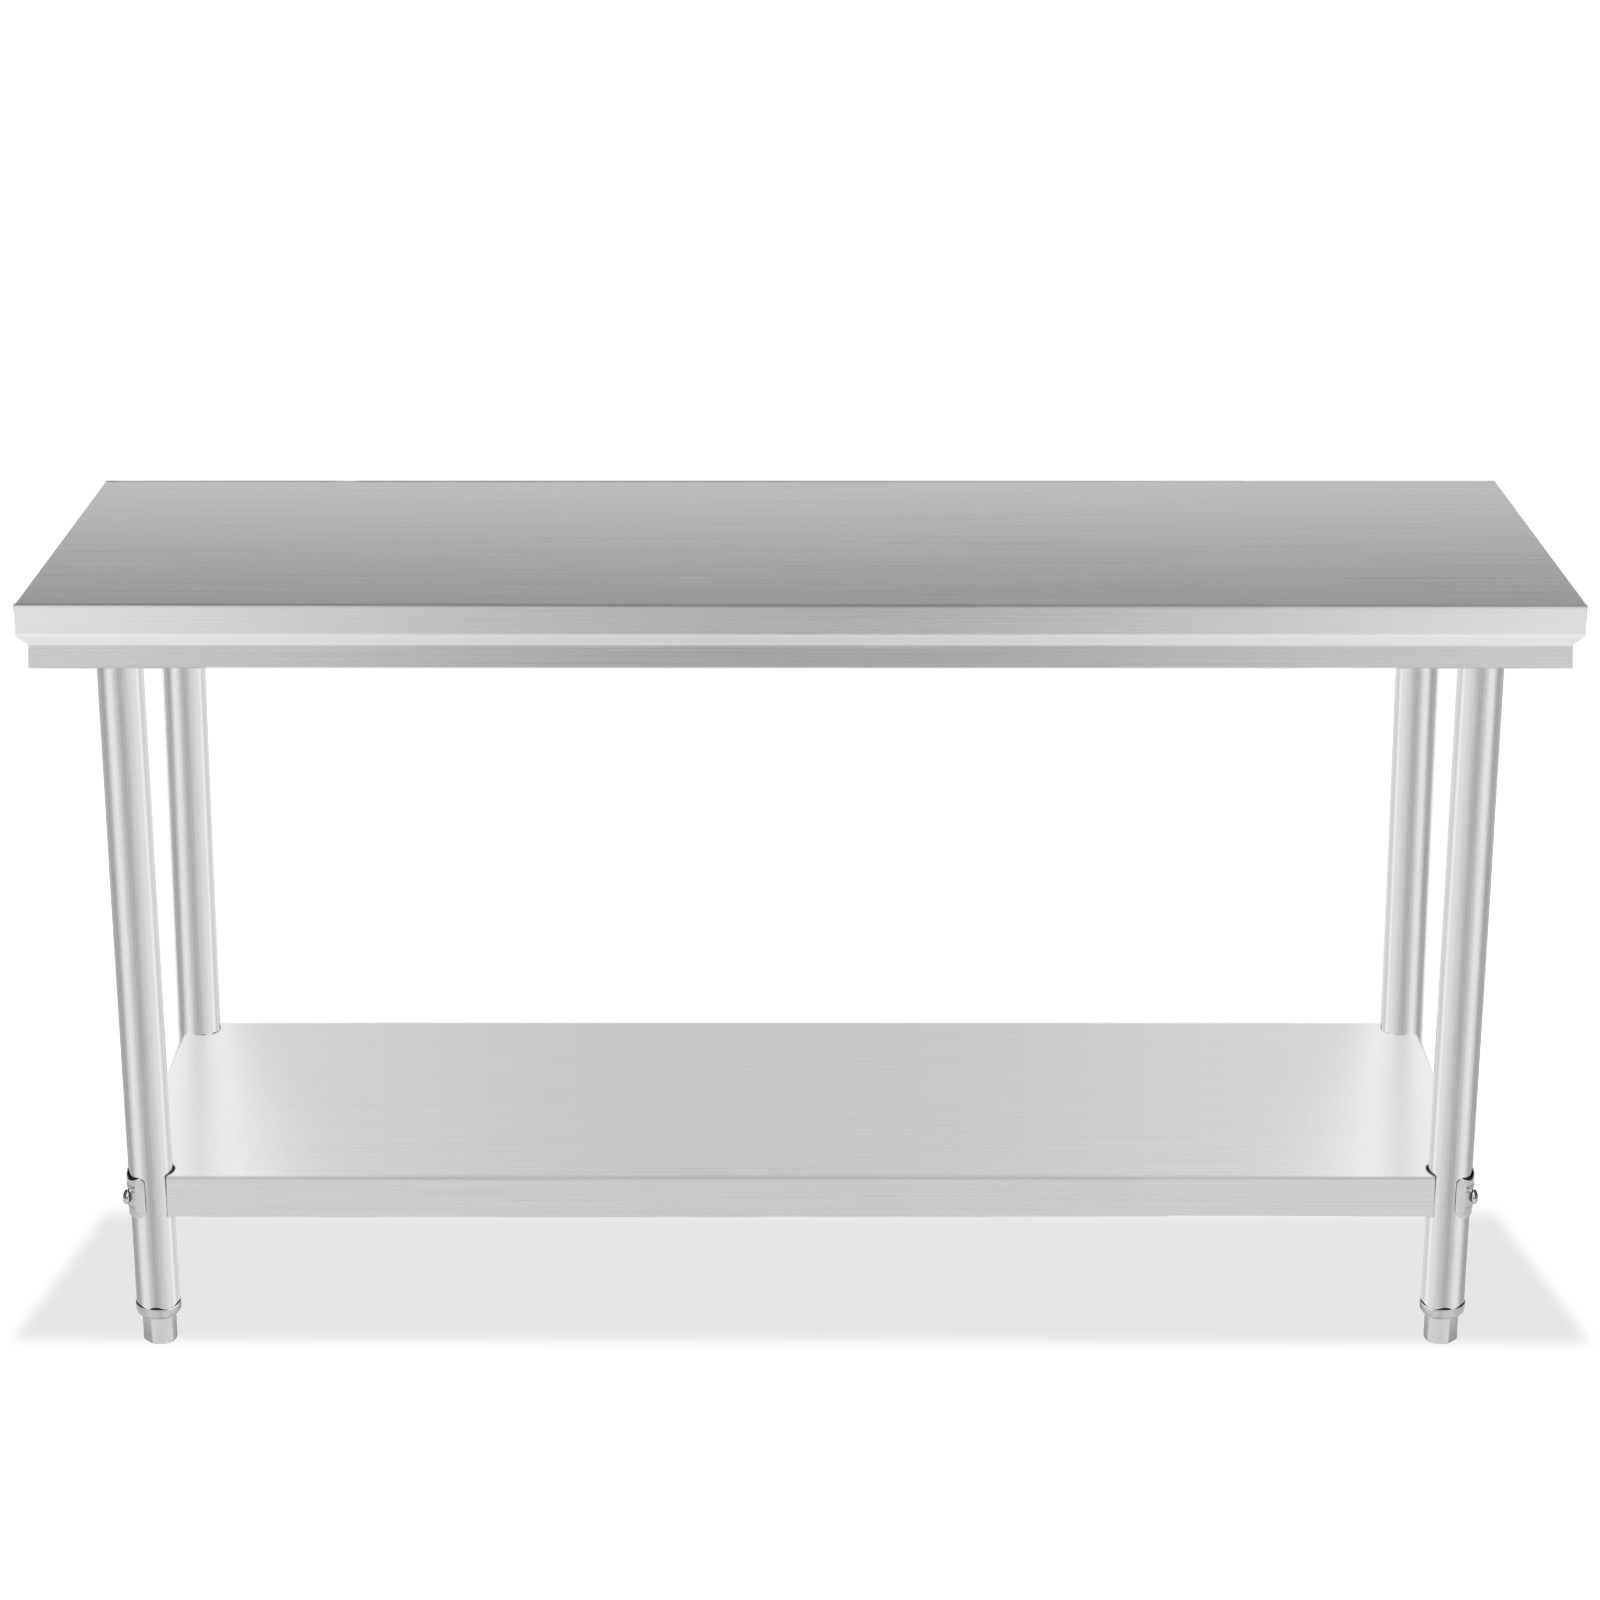 "24& X 48"" Stainless Steel Kitchen Work Prep Table Storage"